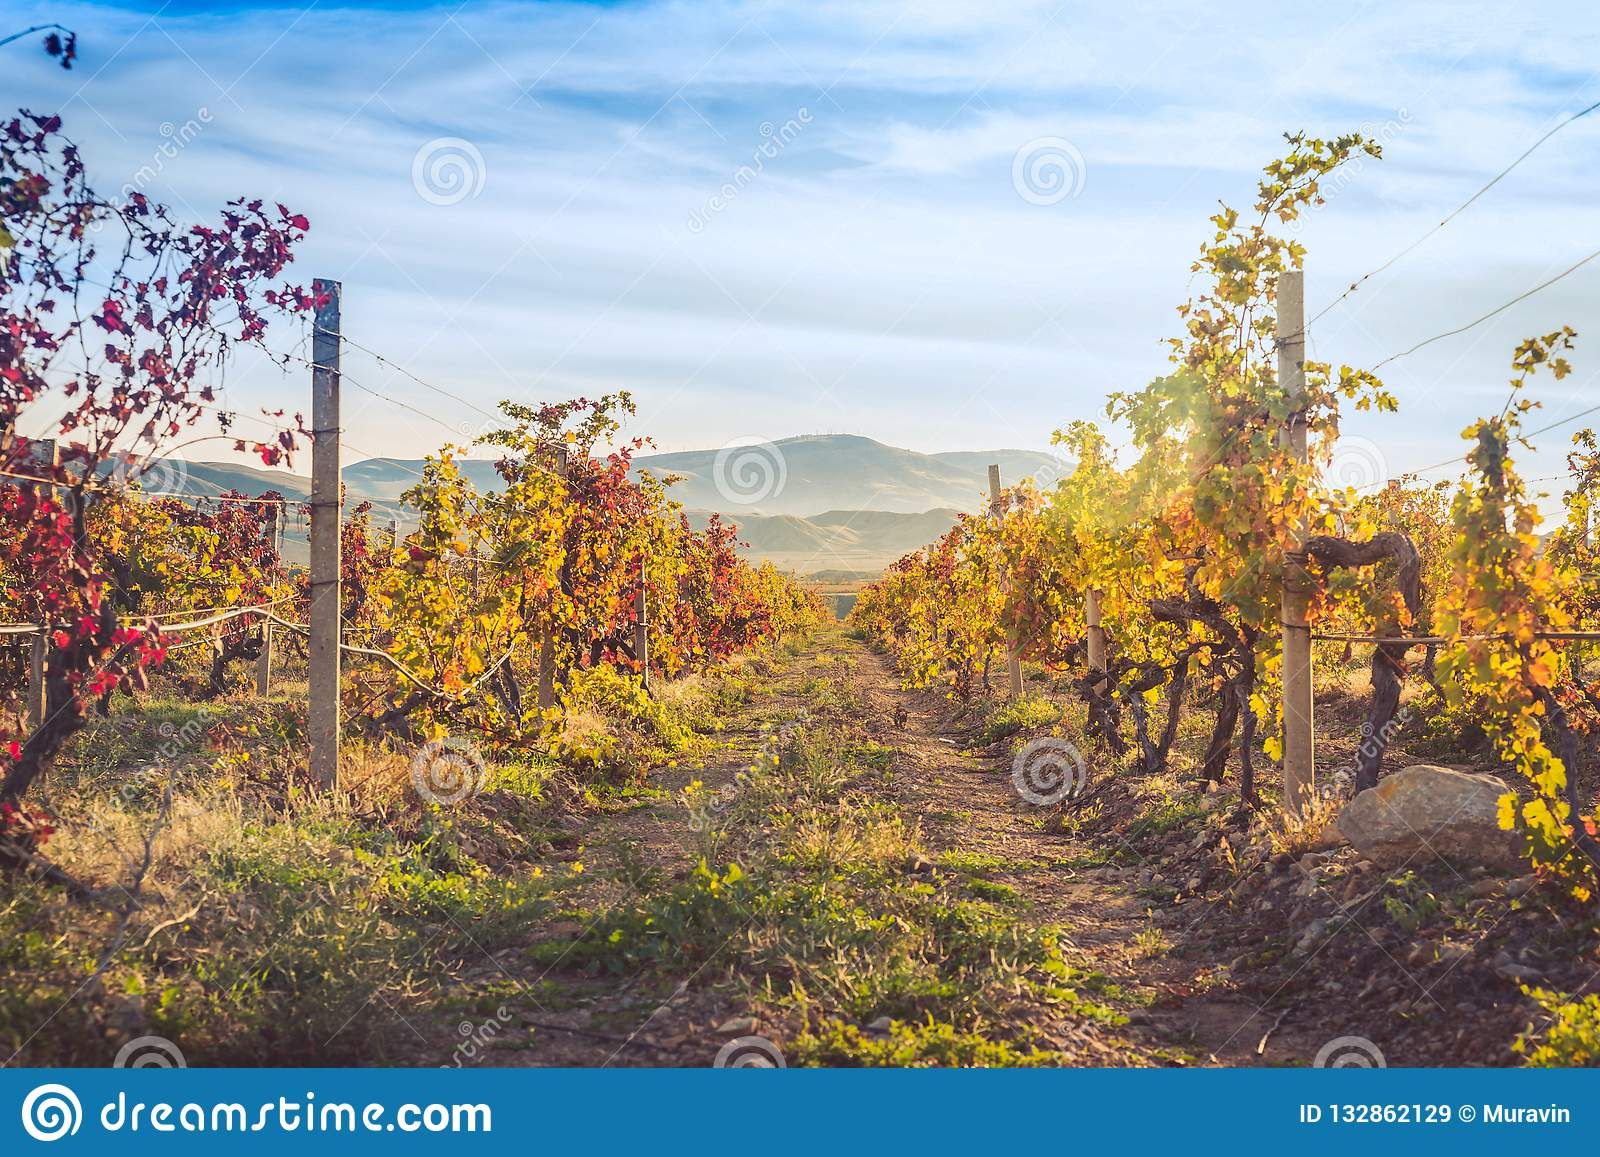 Vineyard with yellow-red leaves in autumn at sunset